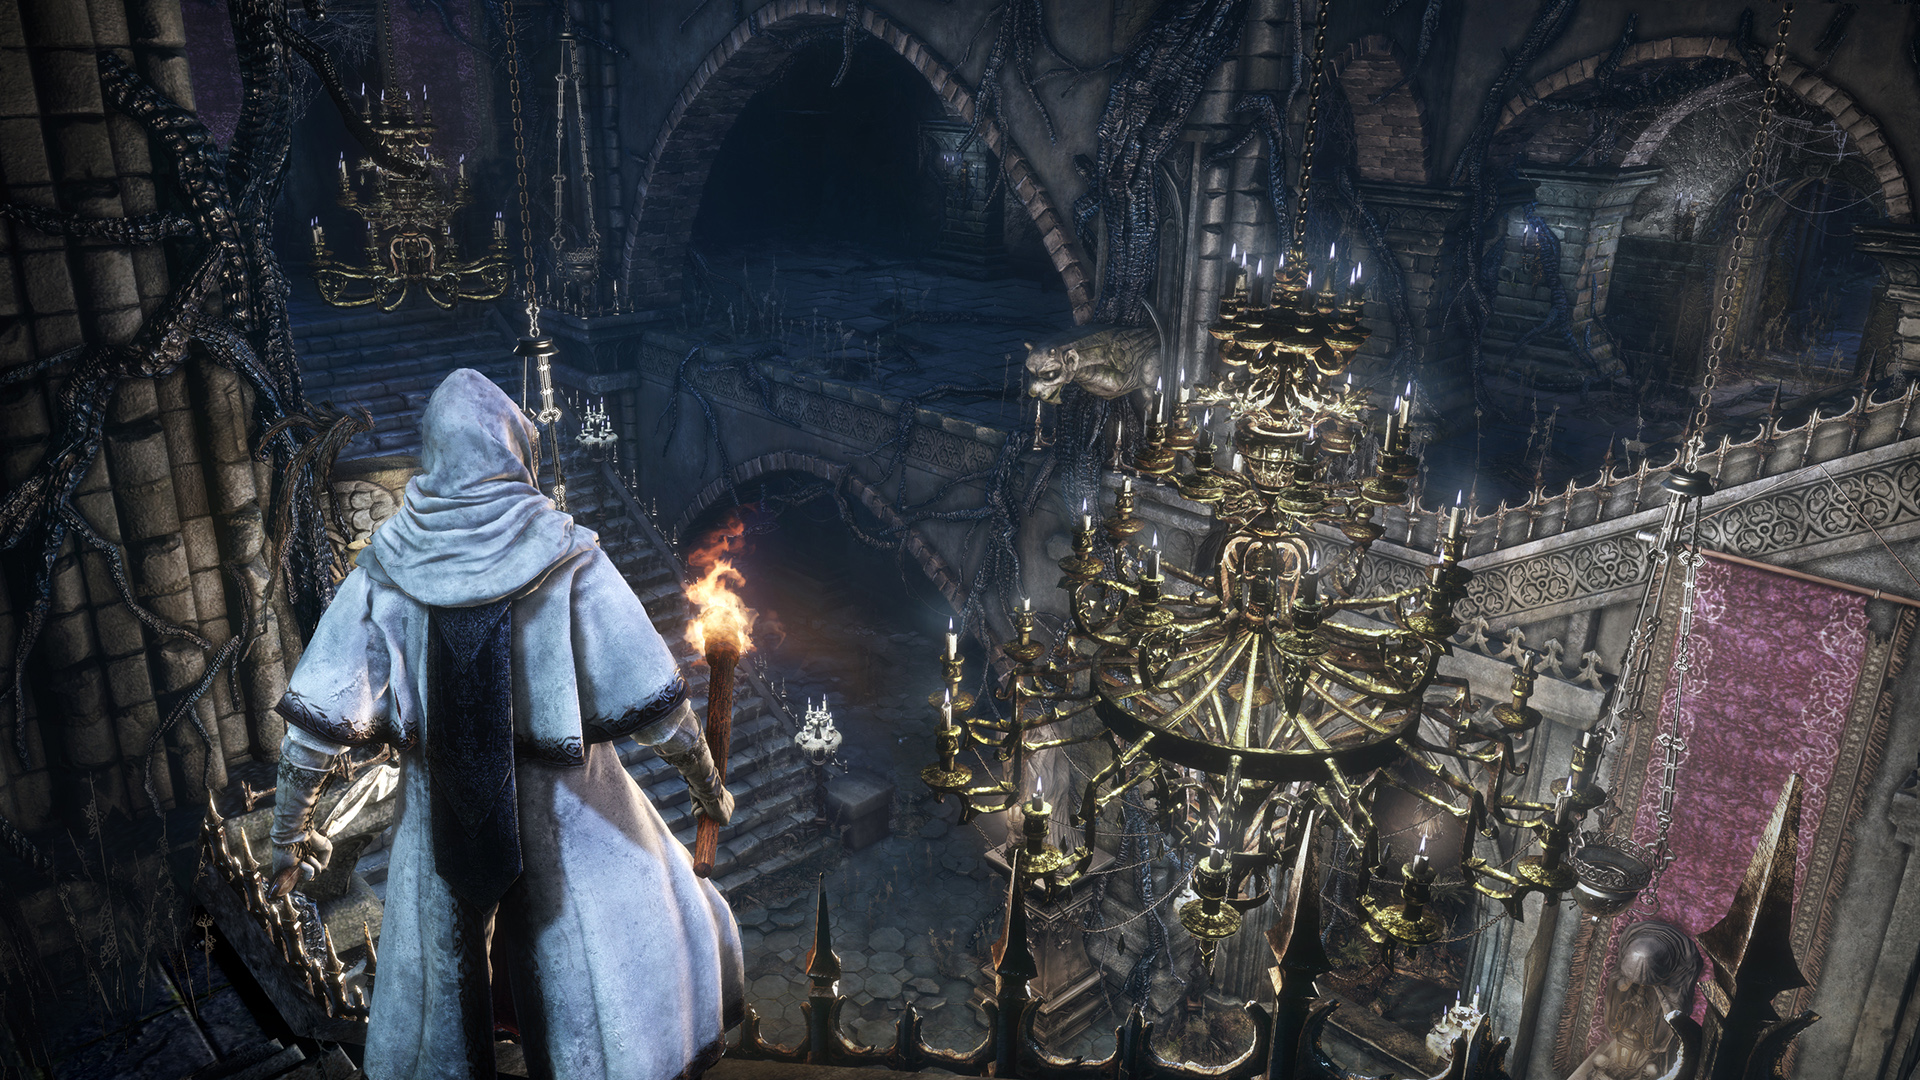 bloodborne key locations guide walkthroughs the escapist